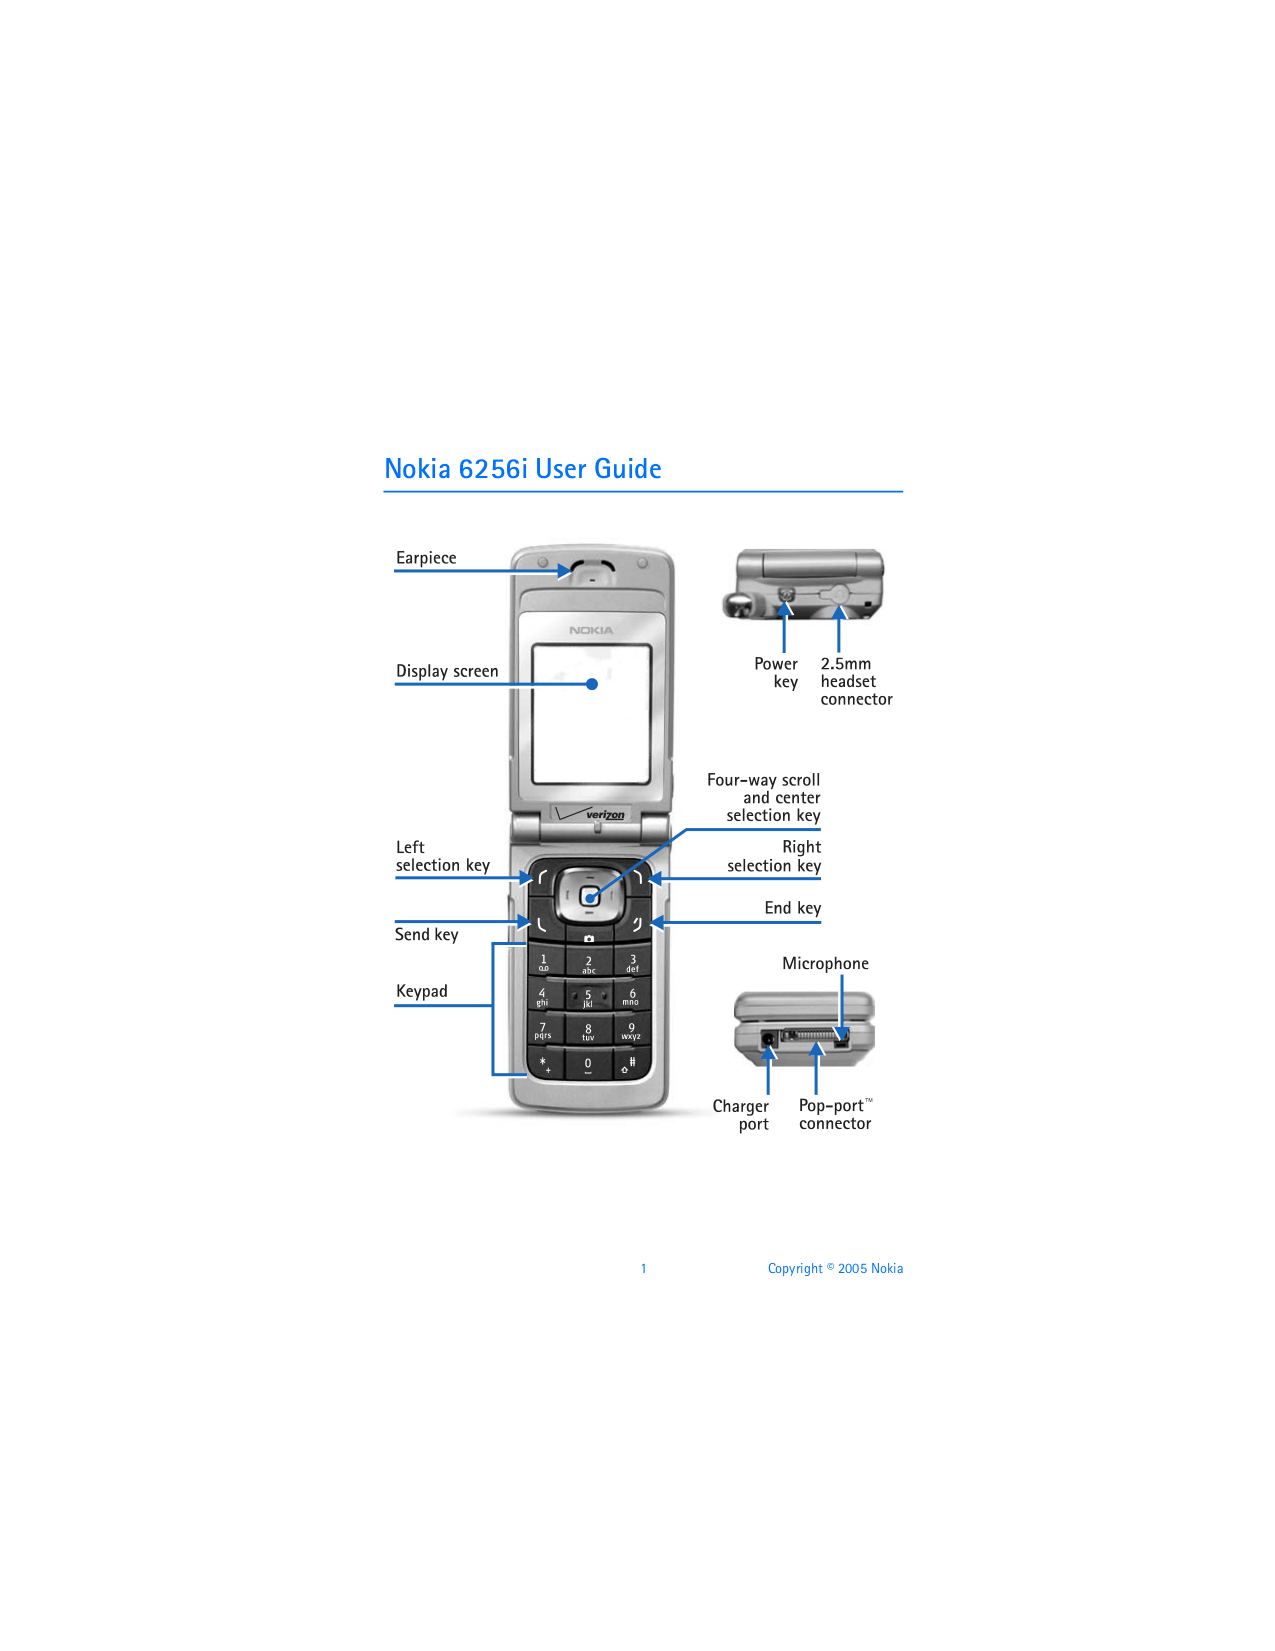 PDF manual for Nokia Cell Phone 6256